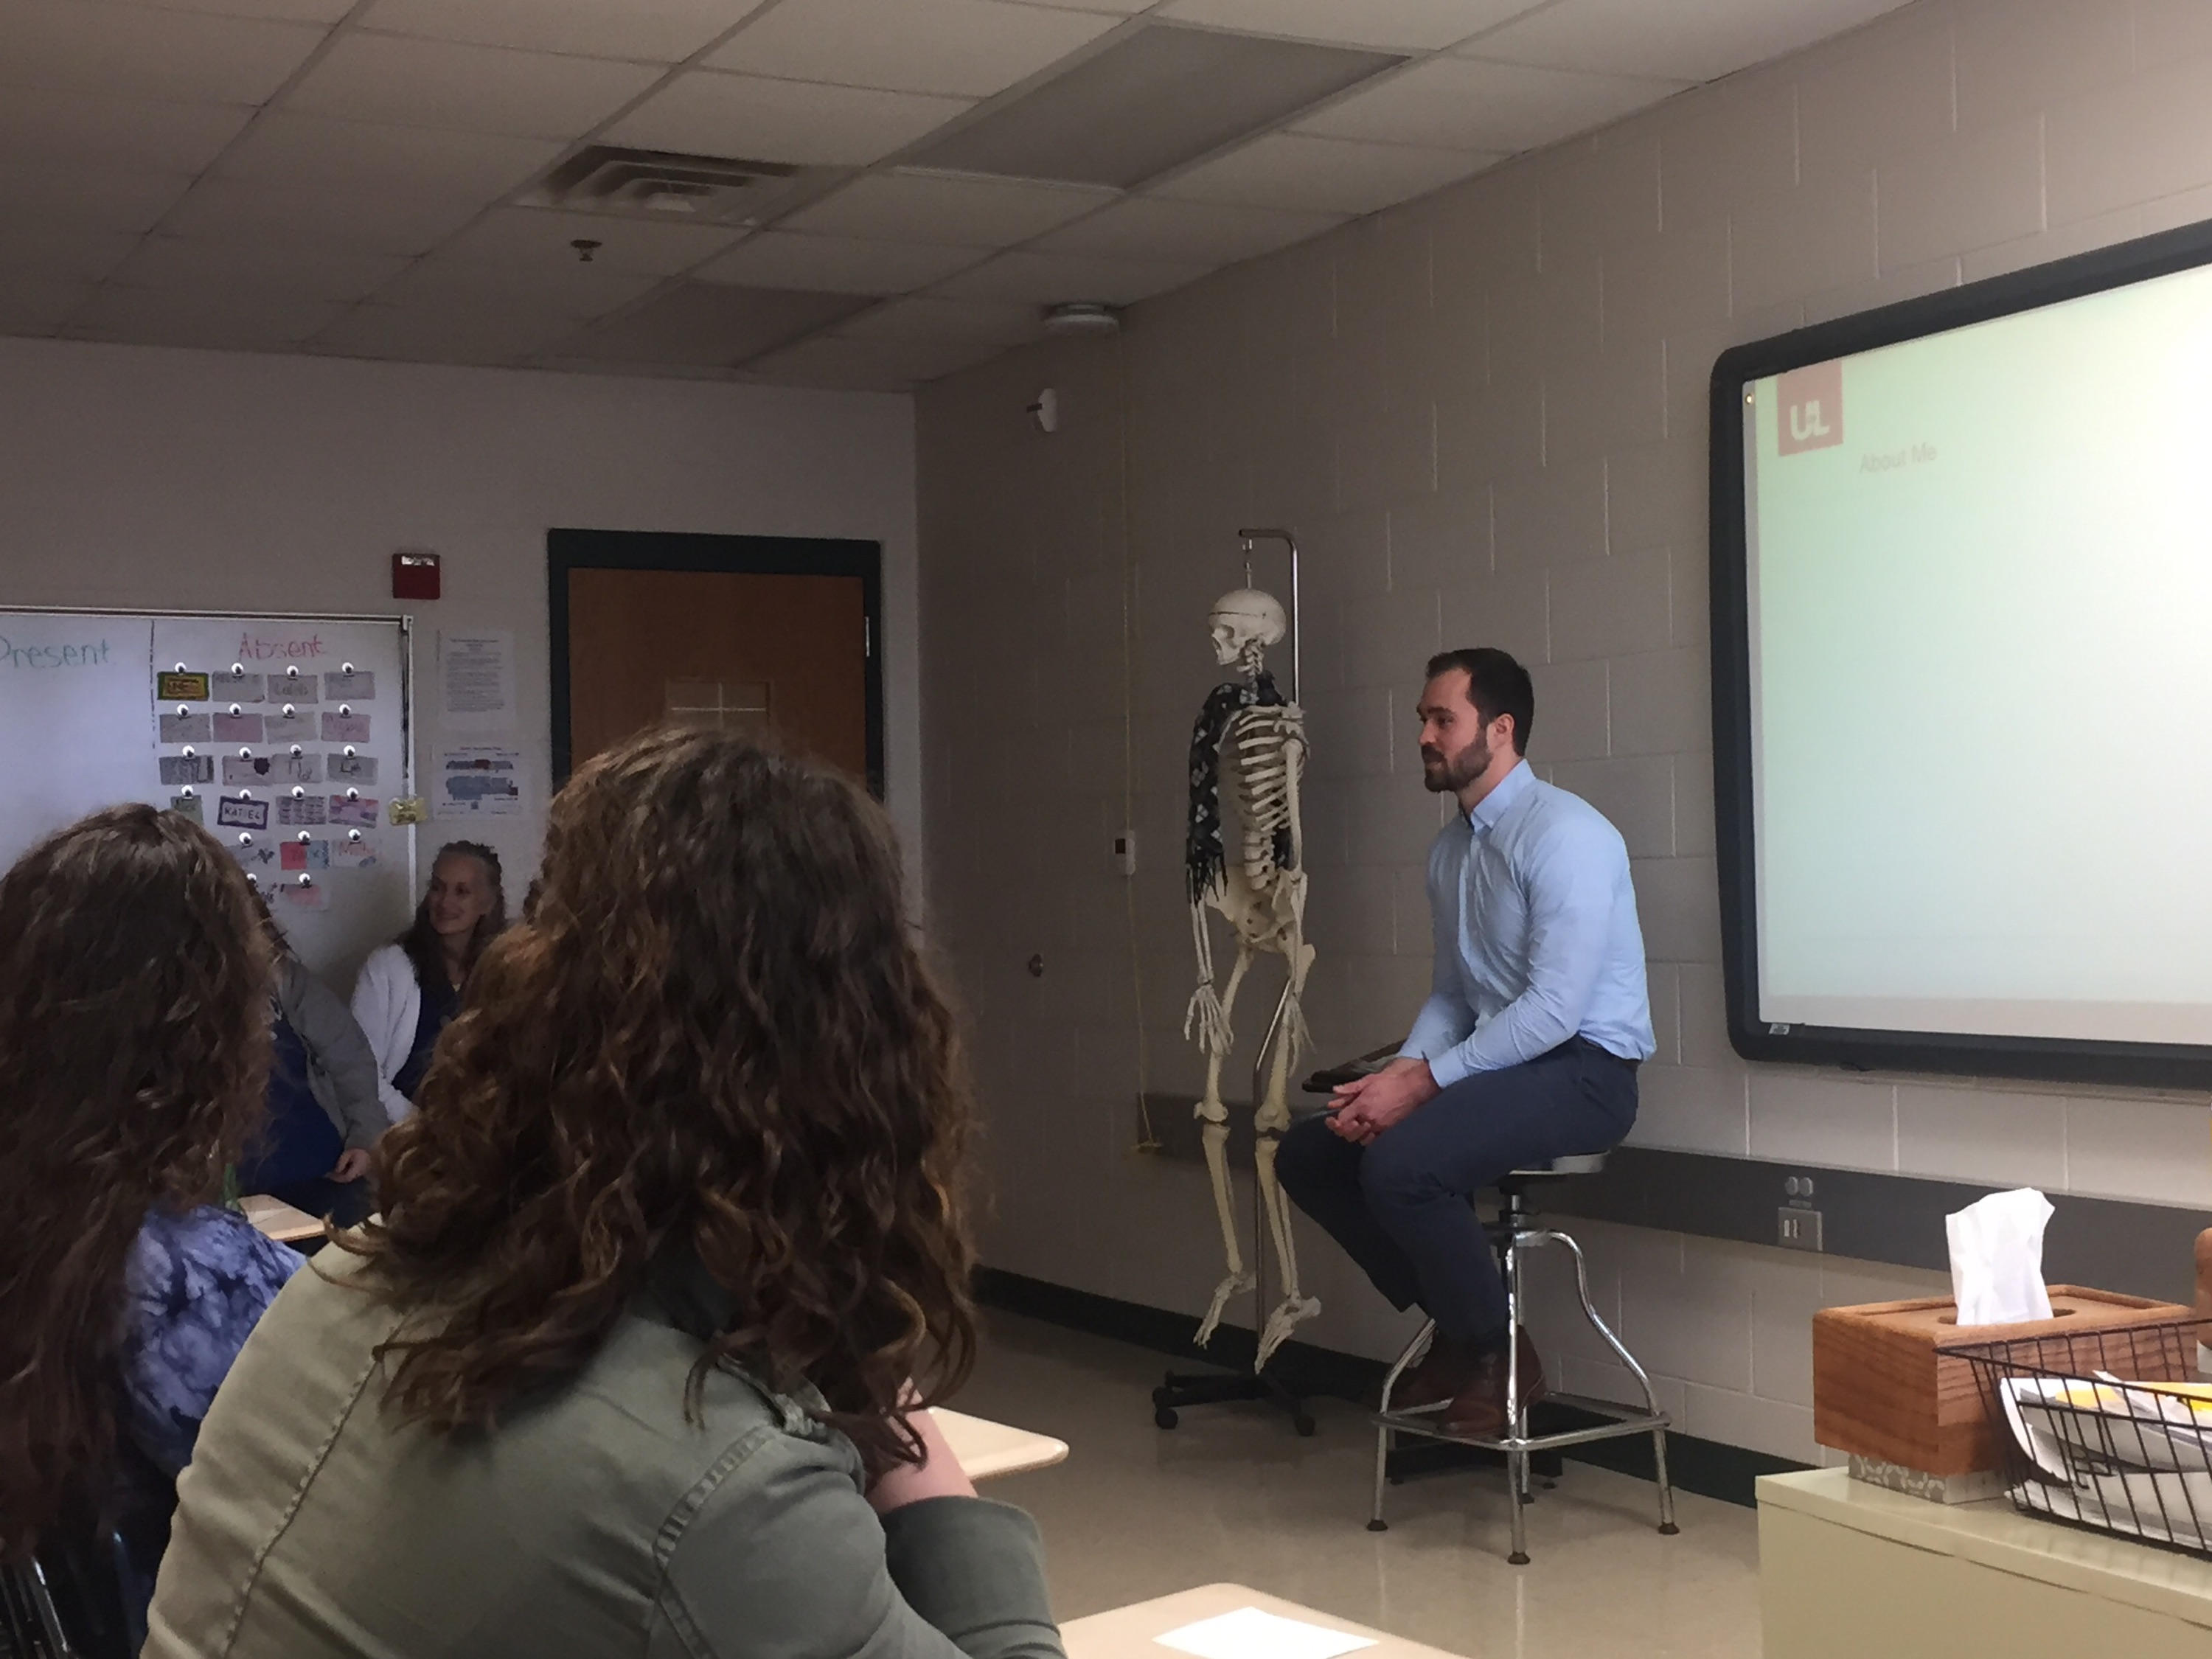 On March 8th, the health science students at CCATC enjoyed a visit with Dennis Propp, a third year medical student at U of L School of Medicine.